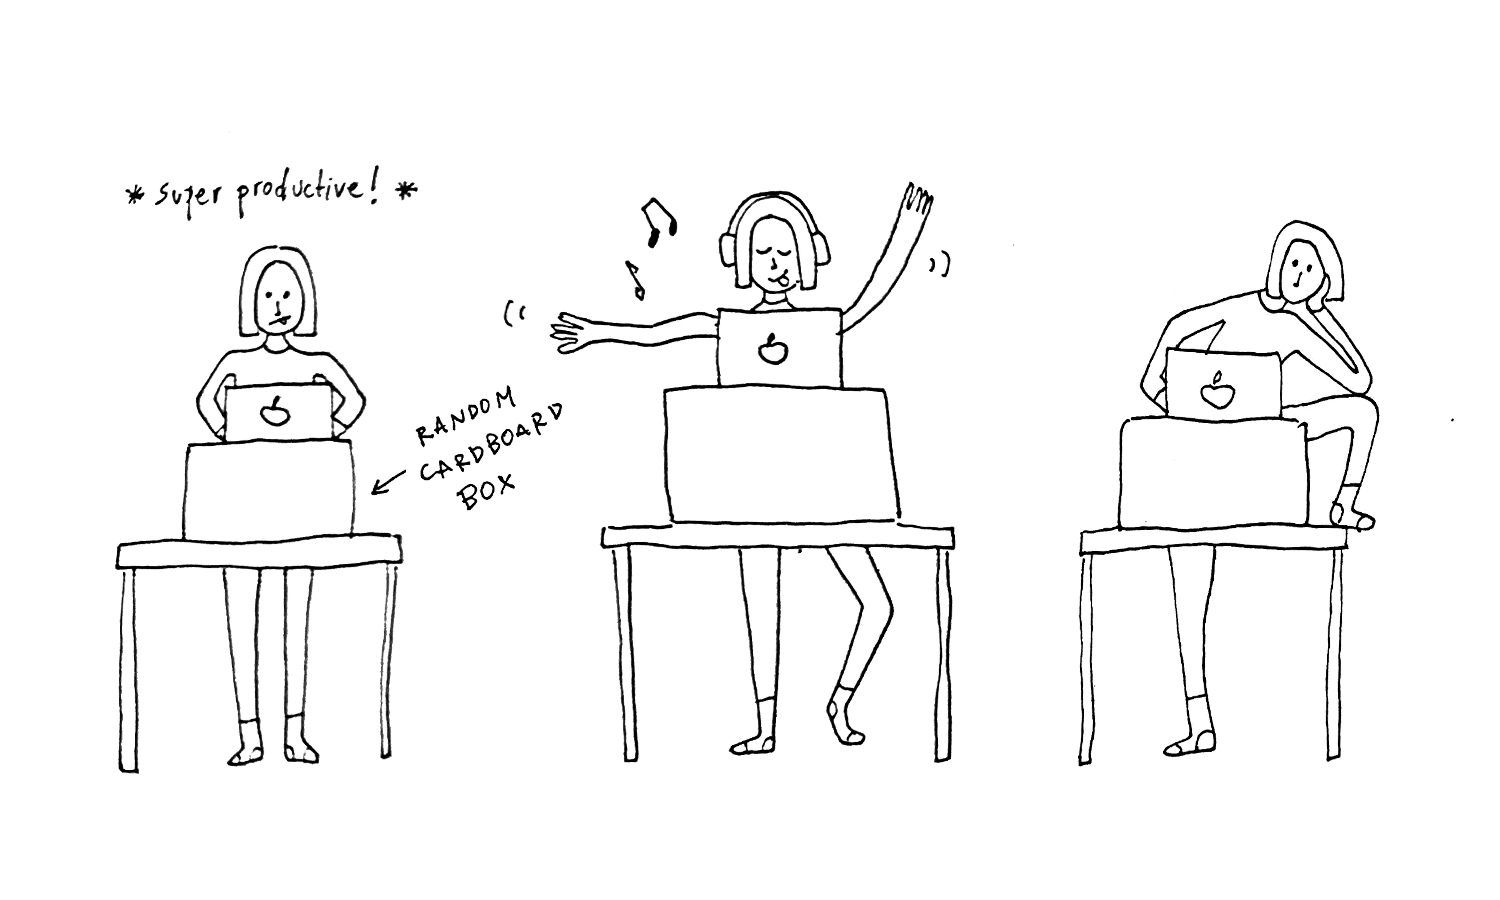 The author shows the benefits of not having a chair: standing while working, dancing while working, stretching while working.